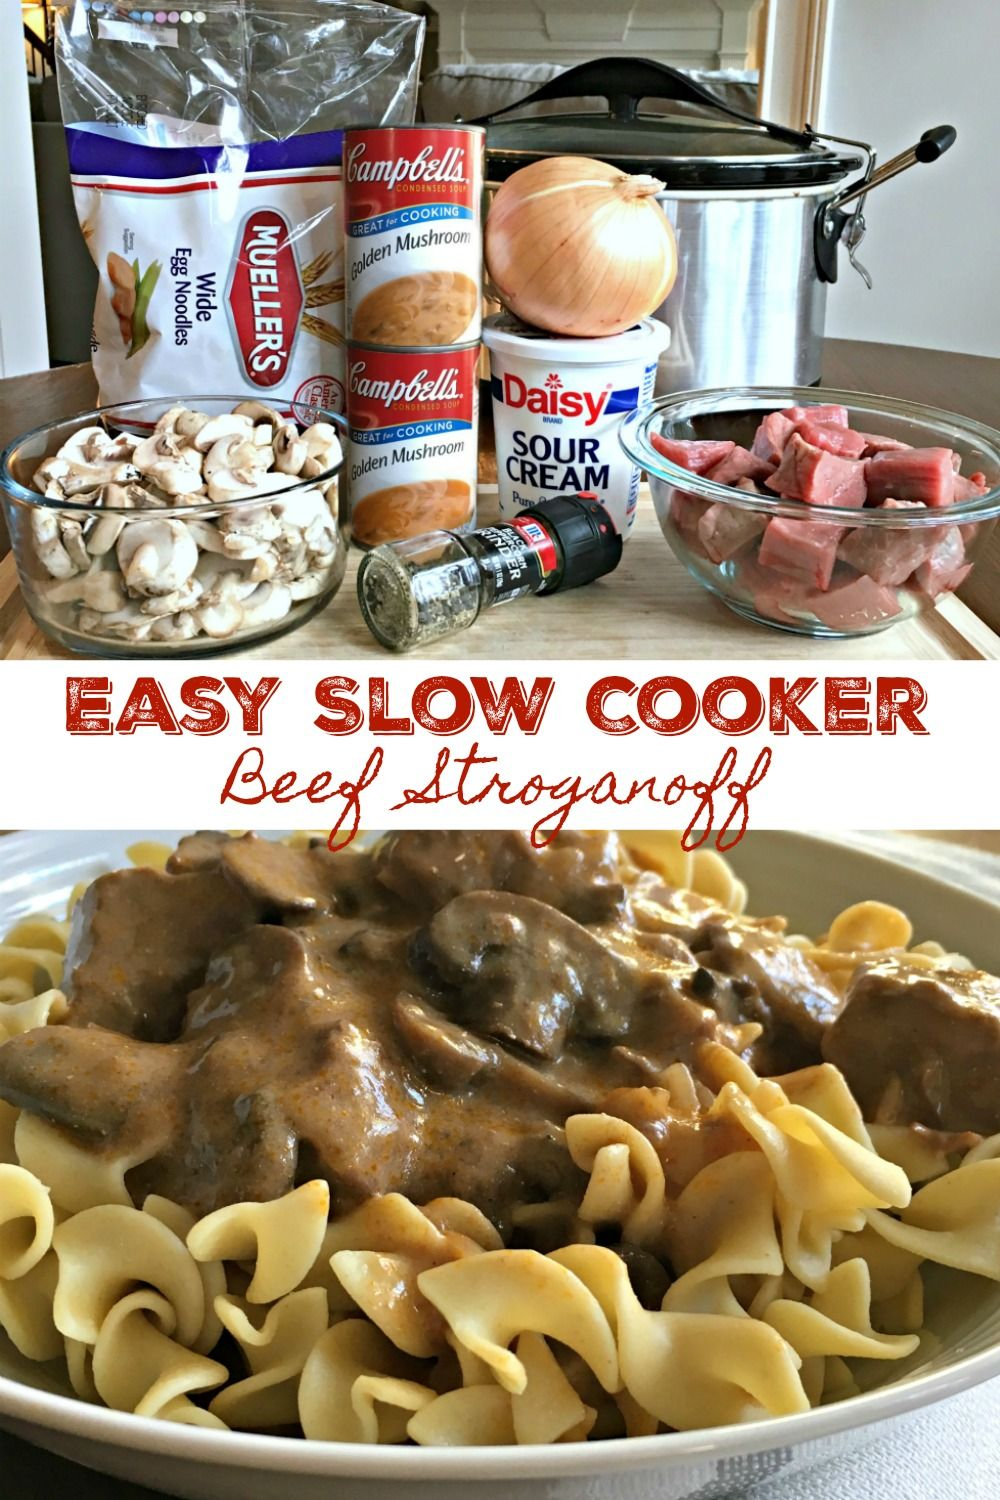 EASY SLOW COOKER BEEF STROGANOFF - Family favorite go-to cold weather meals is made even easier with this fantastic slow cooker recipe! Beef stew meat is slow cooked in a rich, creamy mushroom gravy sauce, cooked to tender perfection then served over egg noodles. A hearty, stick-to-your bones, warm you up meal that's always a hit!! #SlowCooker #CrockPot #BeefStroganoff #Beef #Recipe